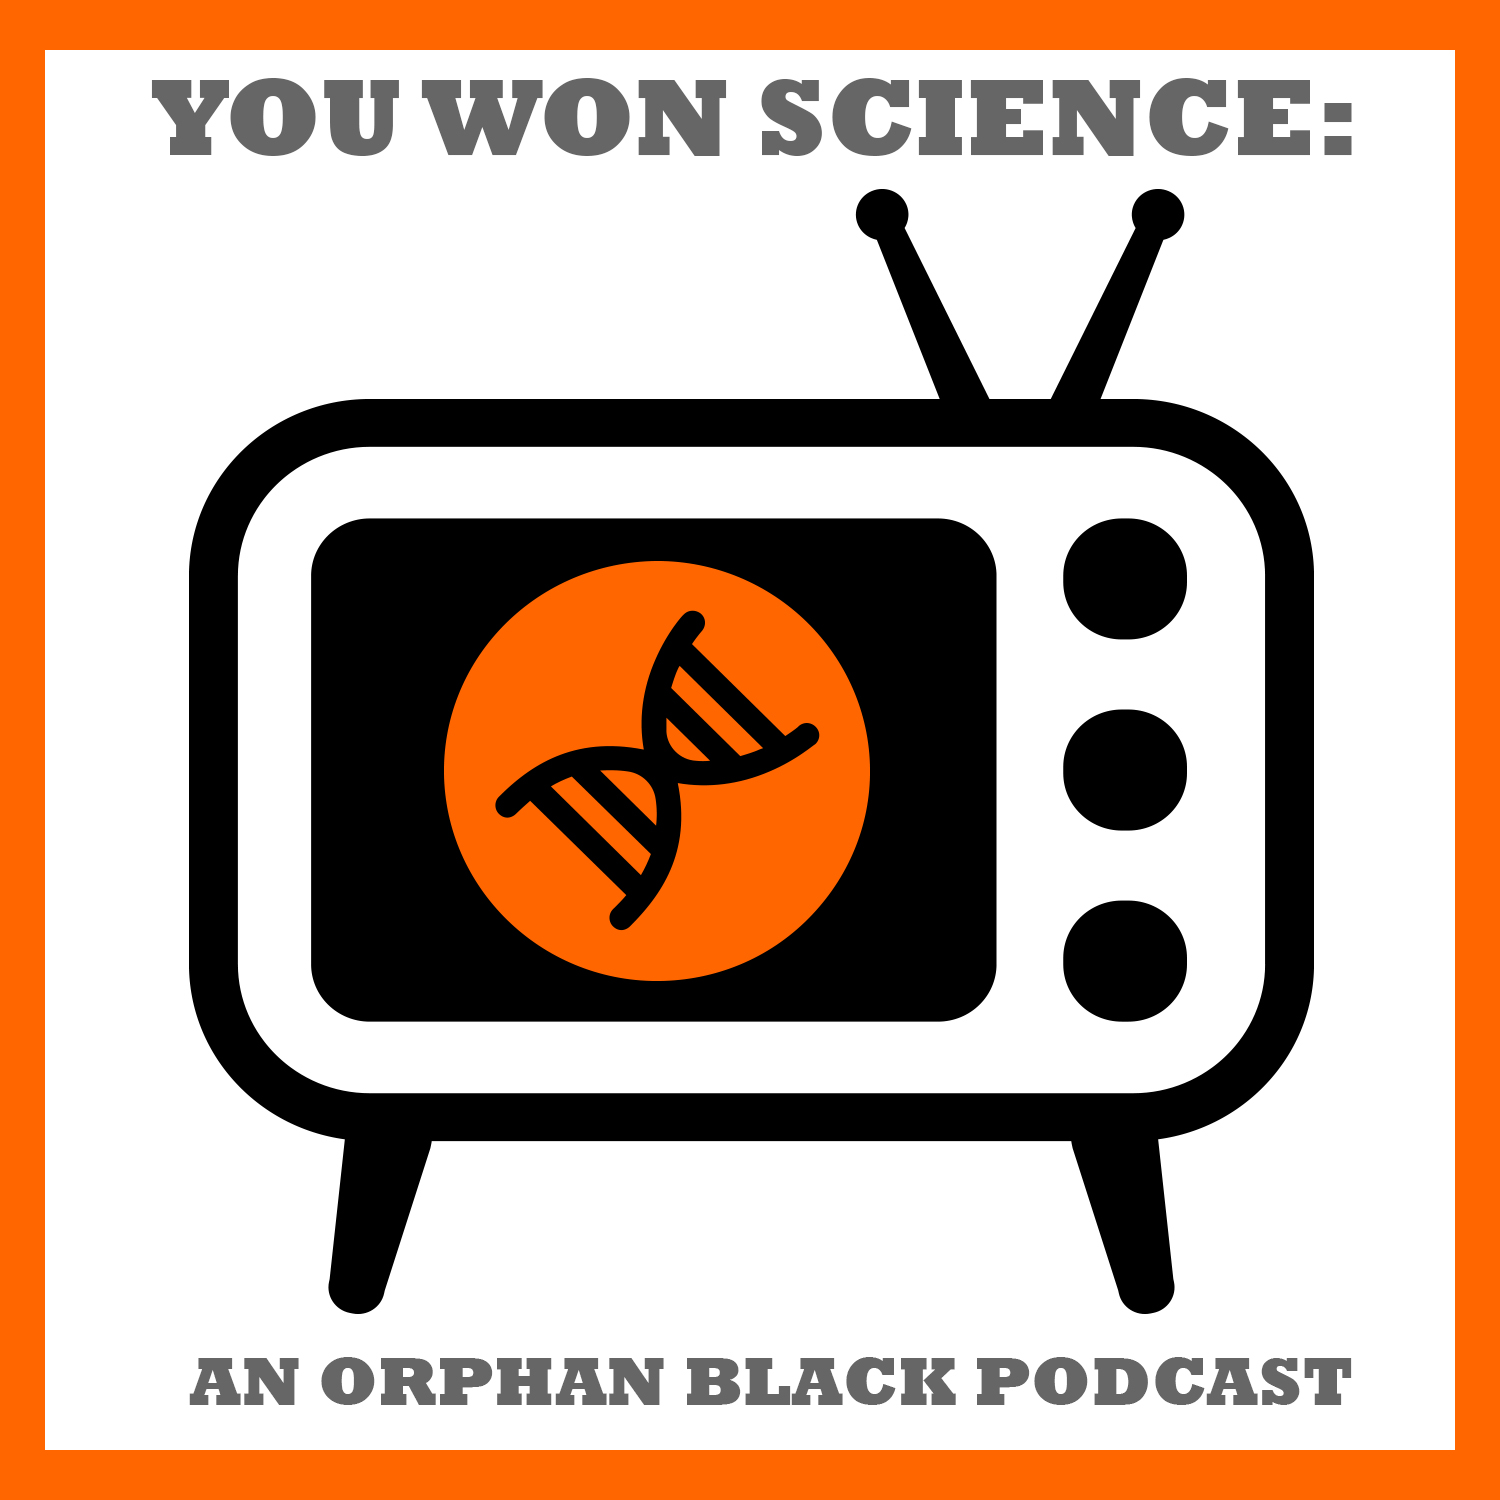 You Won Science: An Orphan Black Podcast